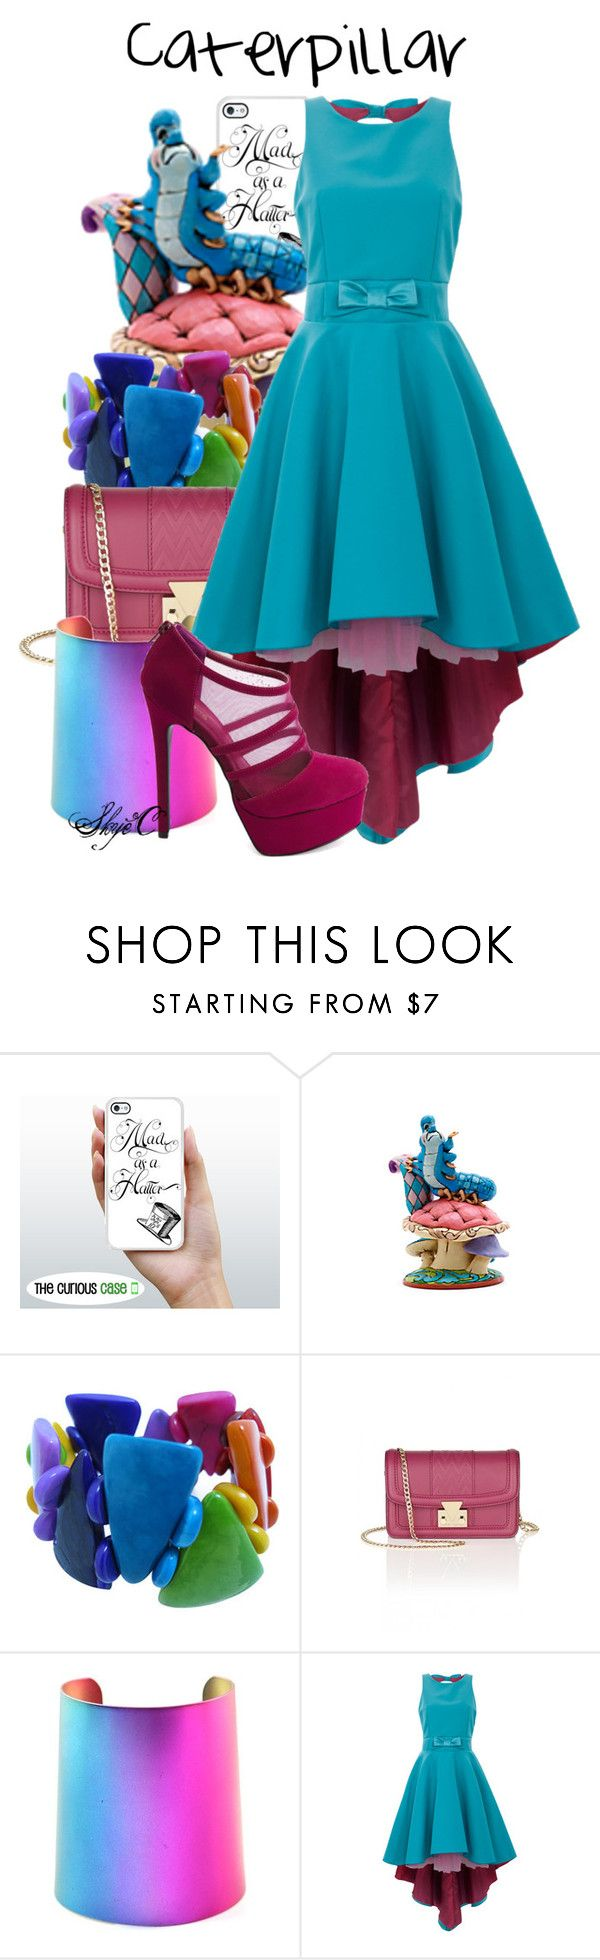 """Caterpillar - Disney's Alice in Wonderland"" by rubytyra ❤ liked on Polyvore featuring Disney, Matthew Williamson, Kate Fearnley, Charlotte Russe, disney, aliceinwonderland and disneybound"